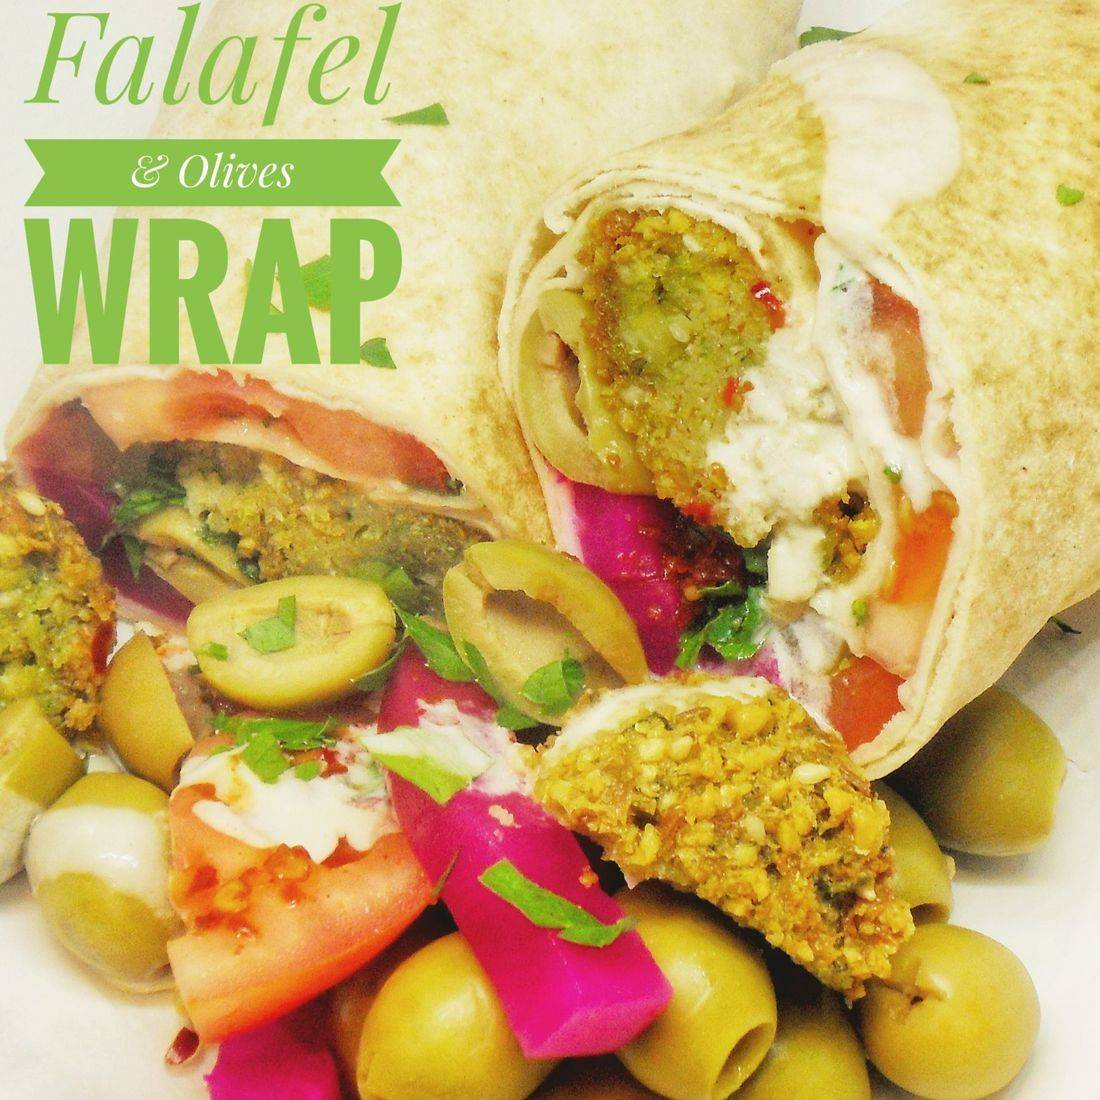 Falafel & Olives Wrap